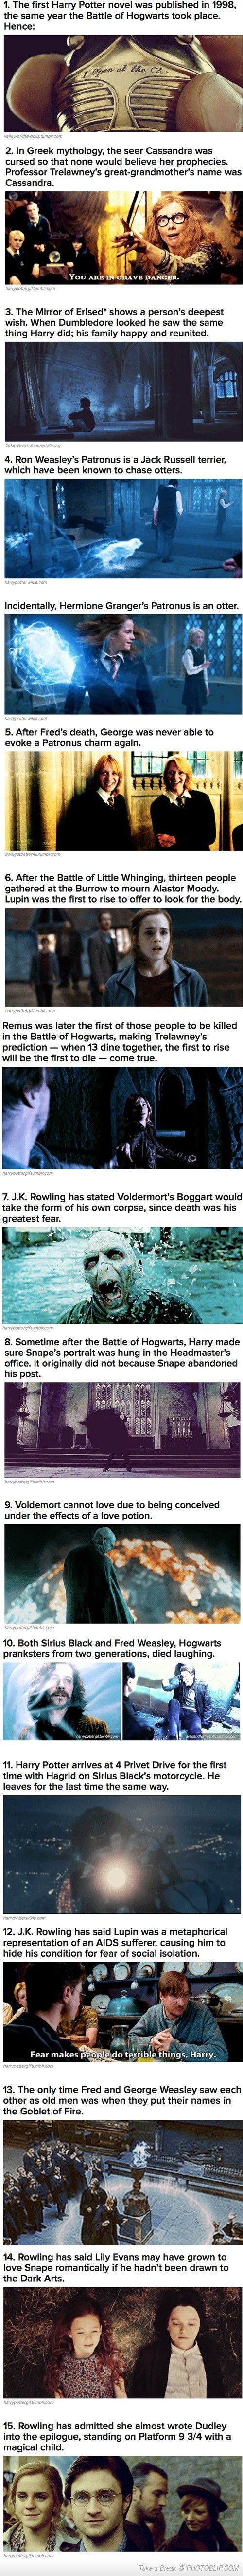 Stuff You Might Not Have Known About Harry Potter